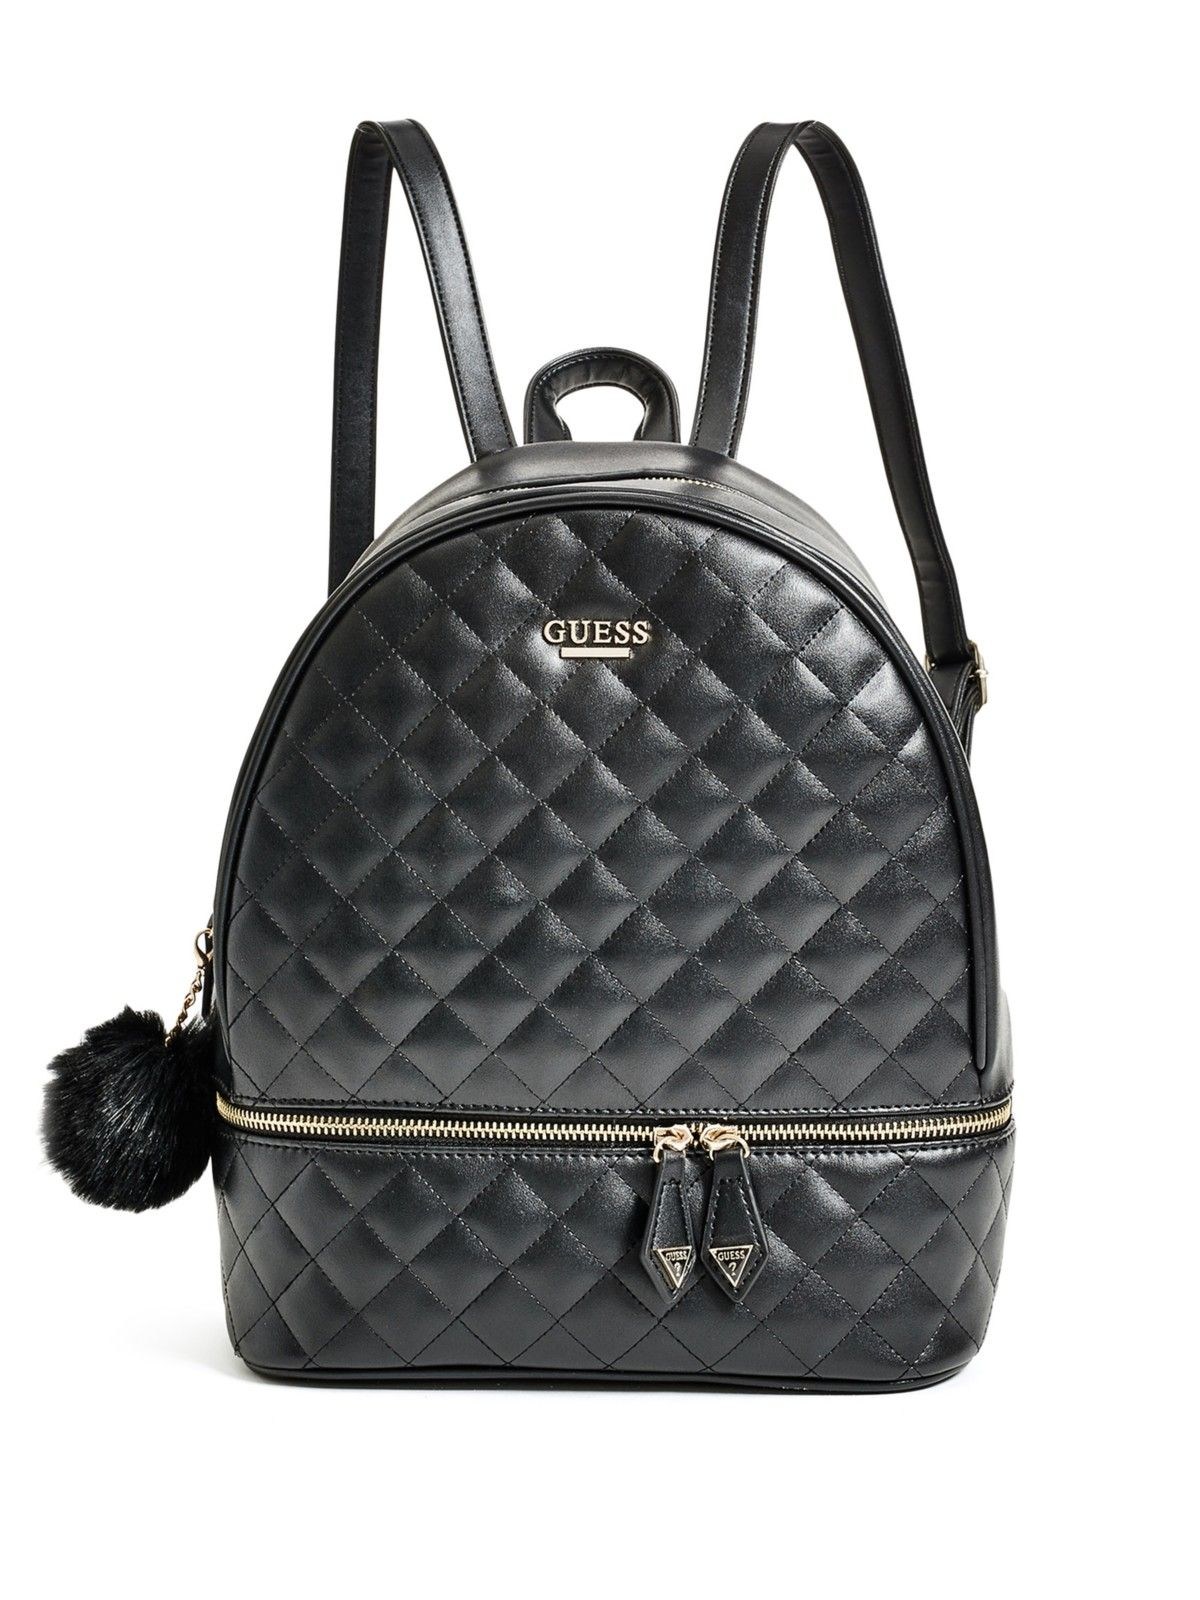 50% off amazing quality 2019 hot sale Buena Backpack | Products | Guess backpack, Guess handbags ...